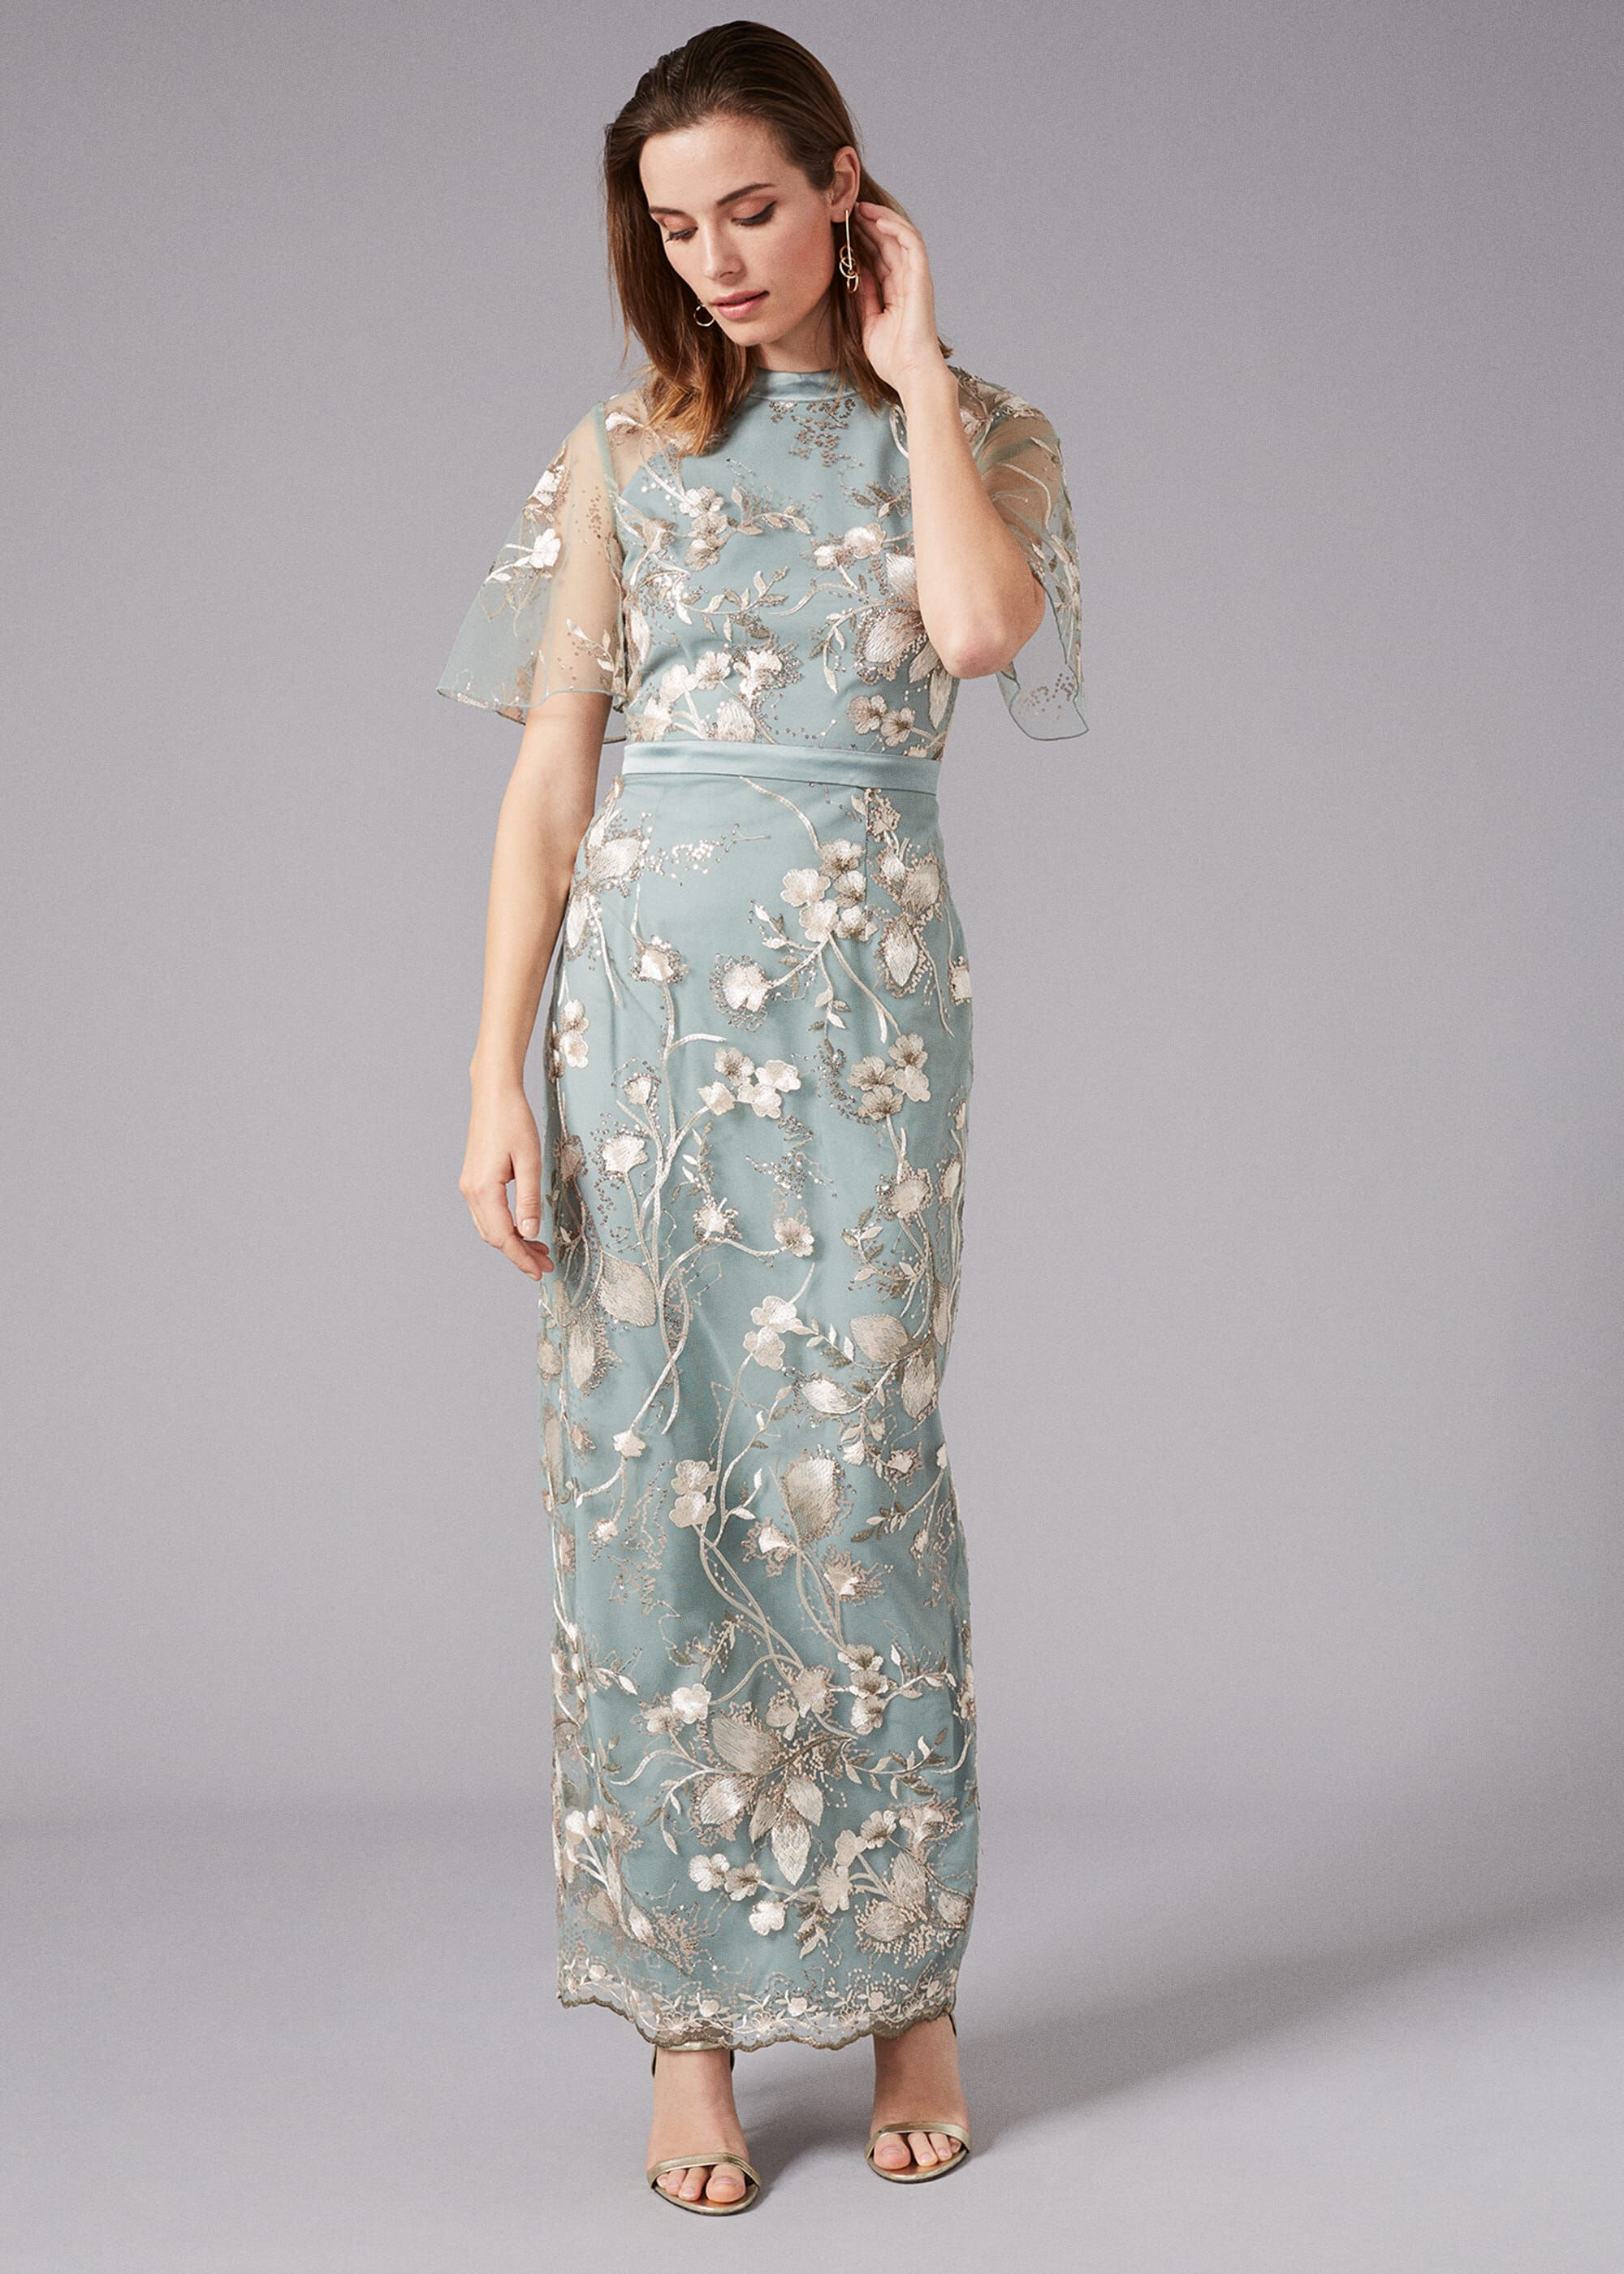 Old Fashioned Dresses | Old Dress Styles Phase Eight Glenda Floral Embroidered Dress Green Maxi Occasion Dress £275.00 AT vintagedancer.com